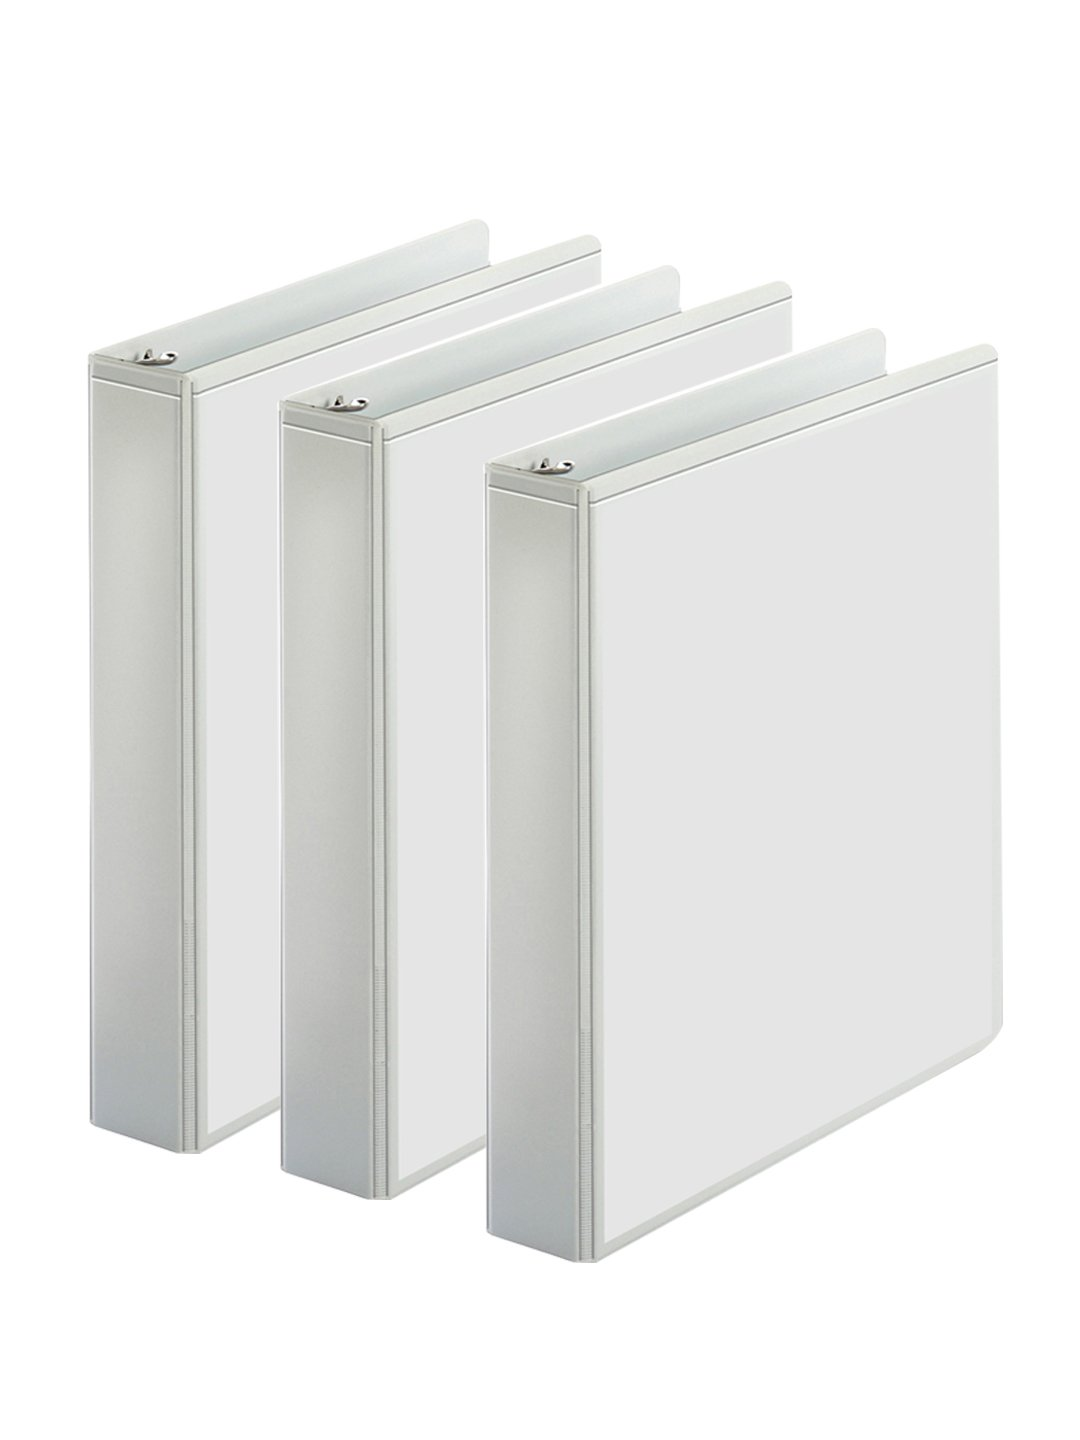 3-Ring Binder, Presentation View Binders - 2 Interior Pockets - Easily Organize Projects, presentations, and More - Clear Front for Easy Customization - Holds 350 Sheets - 3-Pack (1.5-inch, White)